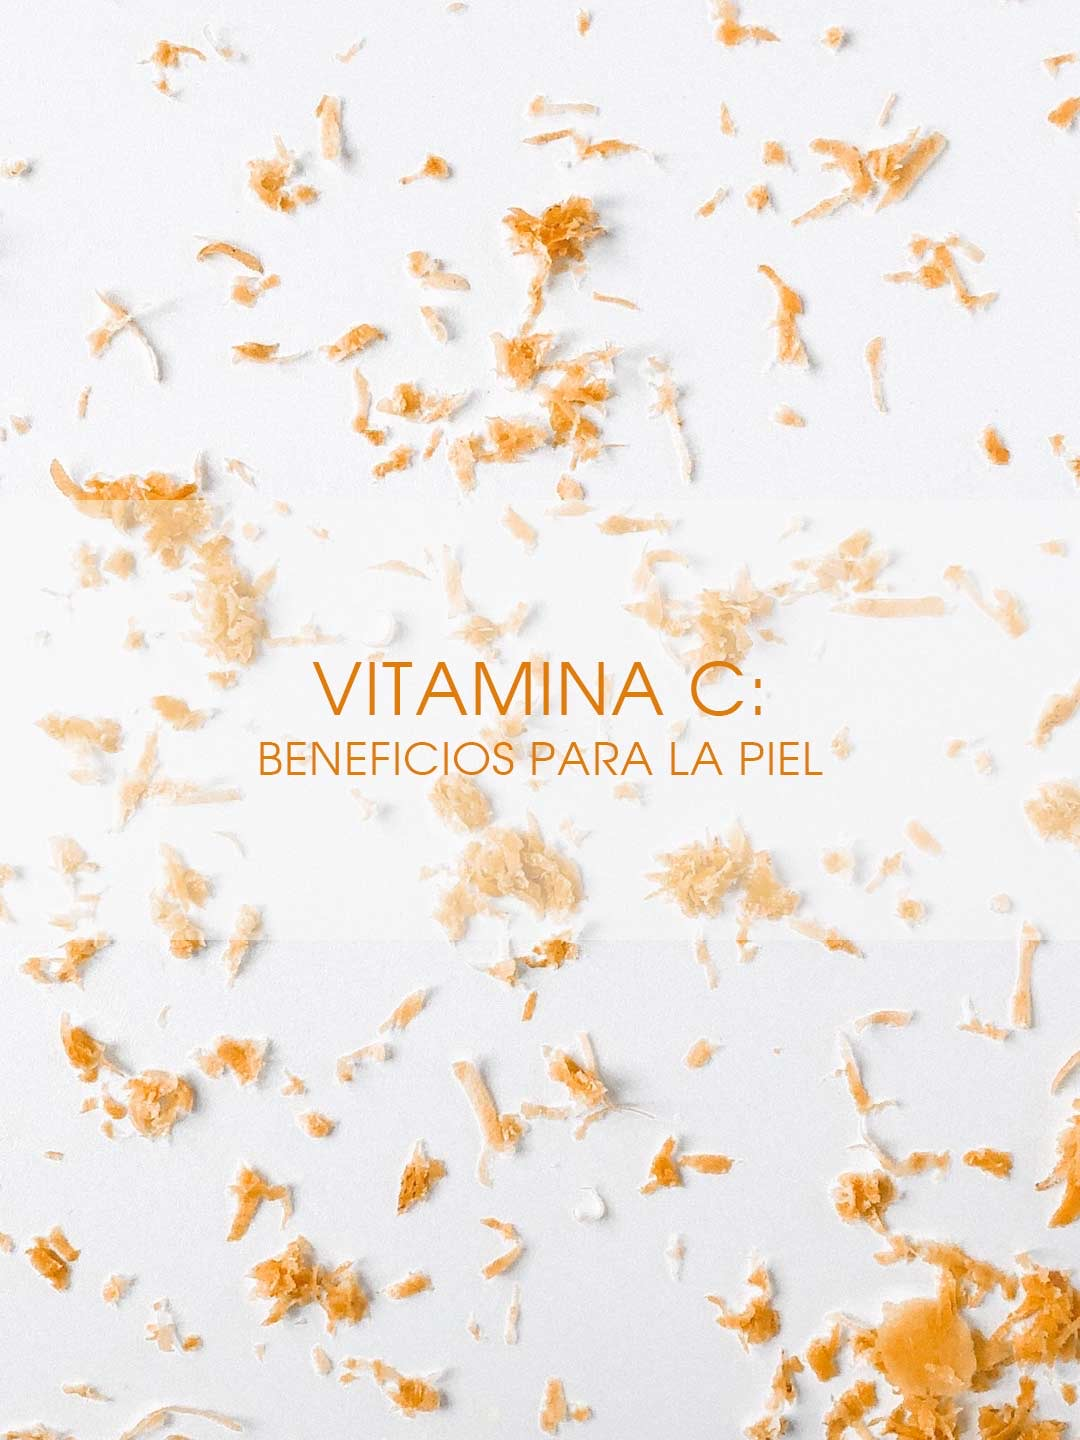 The Moisturizer - Vitamina C: Beneficios para la piel